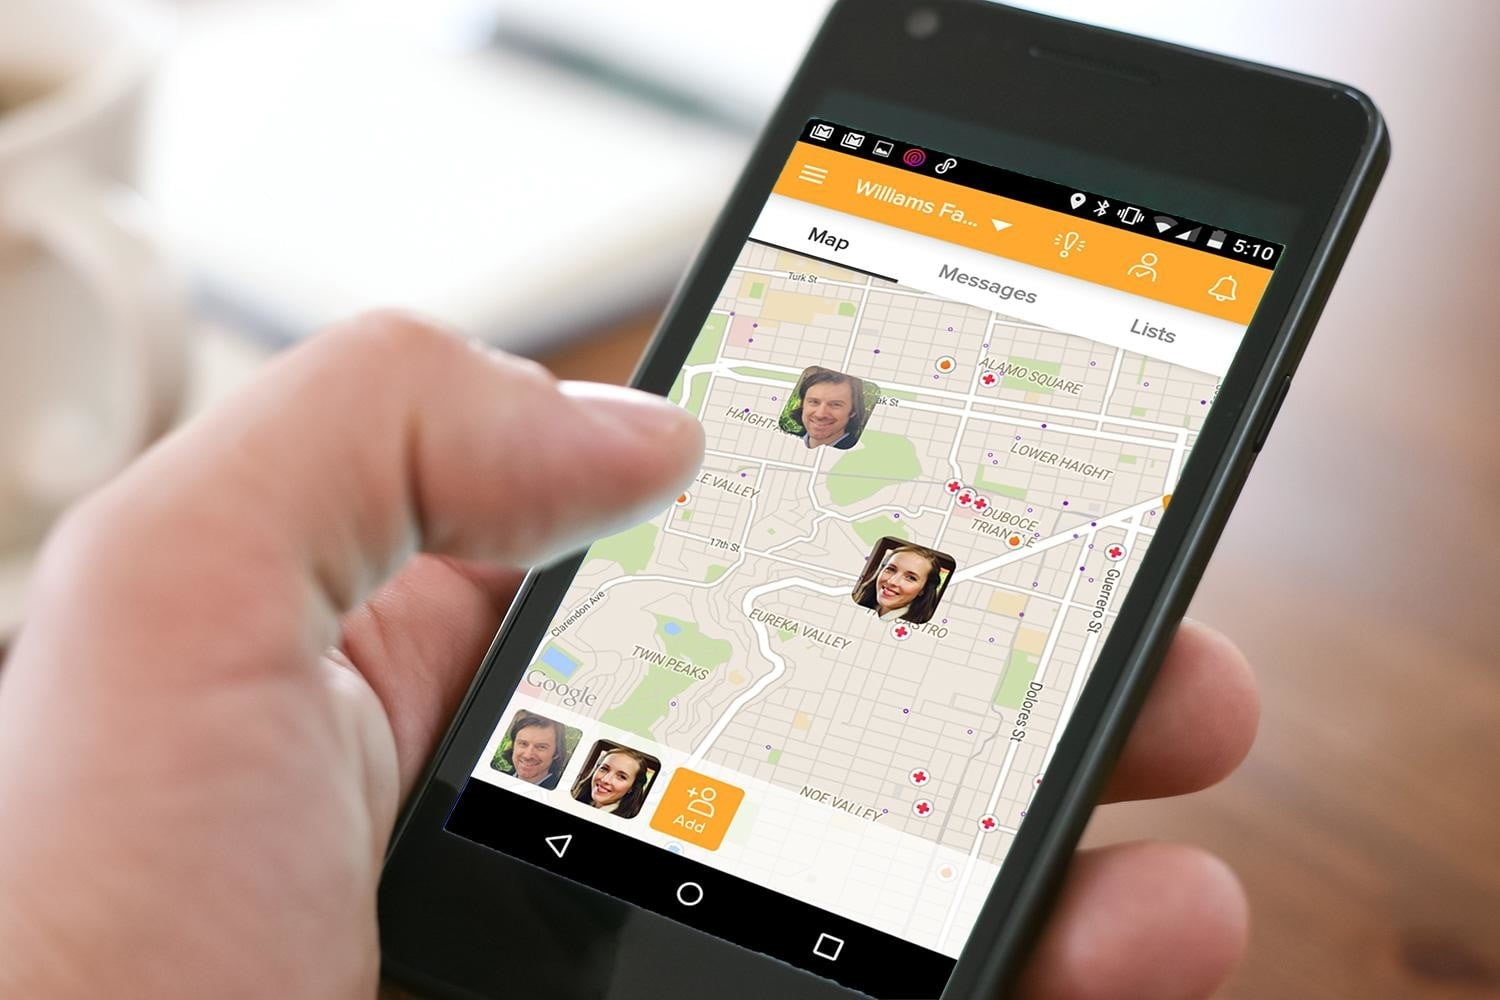 Best Mobile Phone Tracker Apps, Spy Phone Apps With GPS Tracking